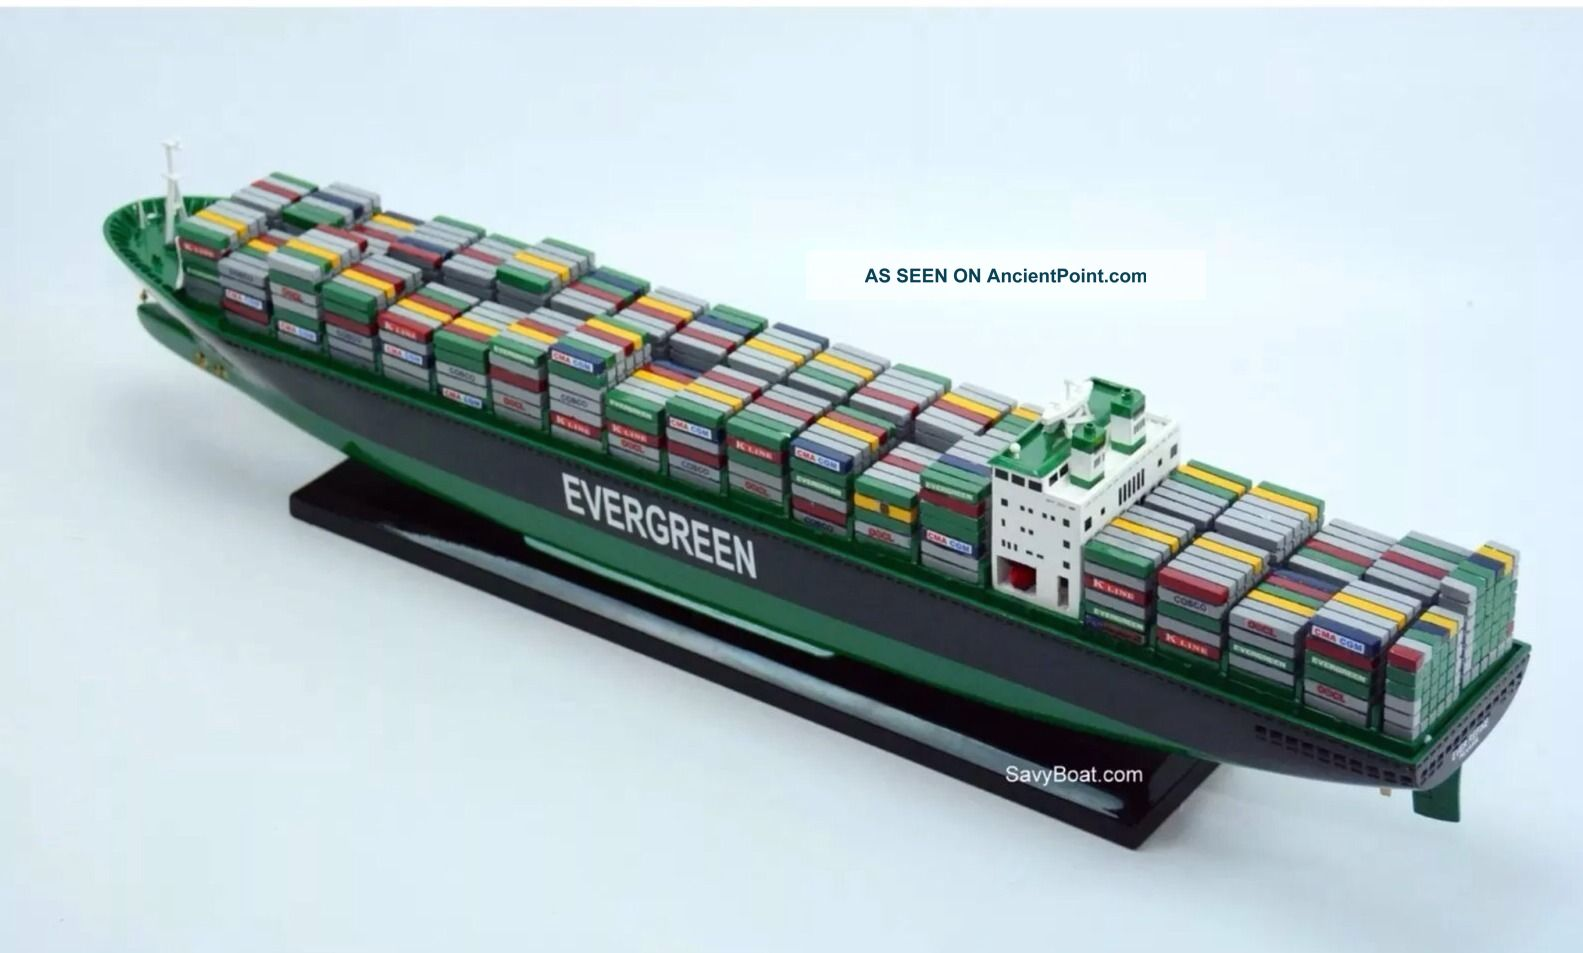 Evergreen Container Ship Model 28